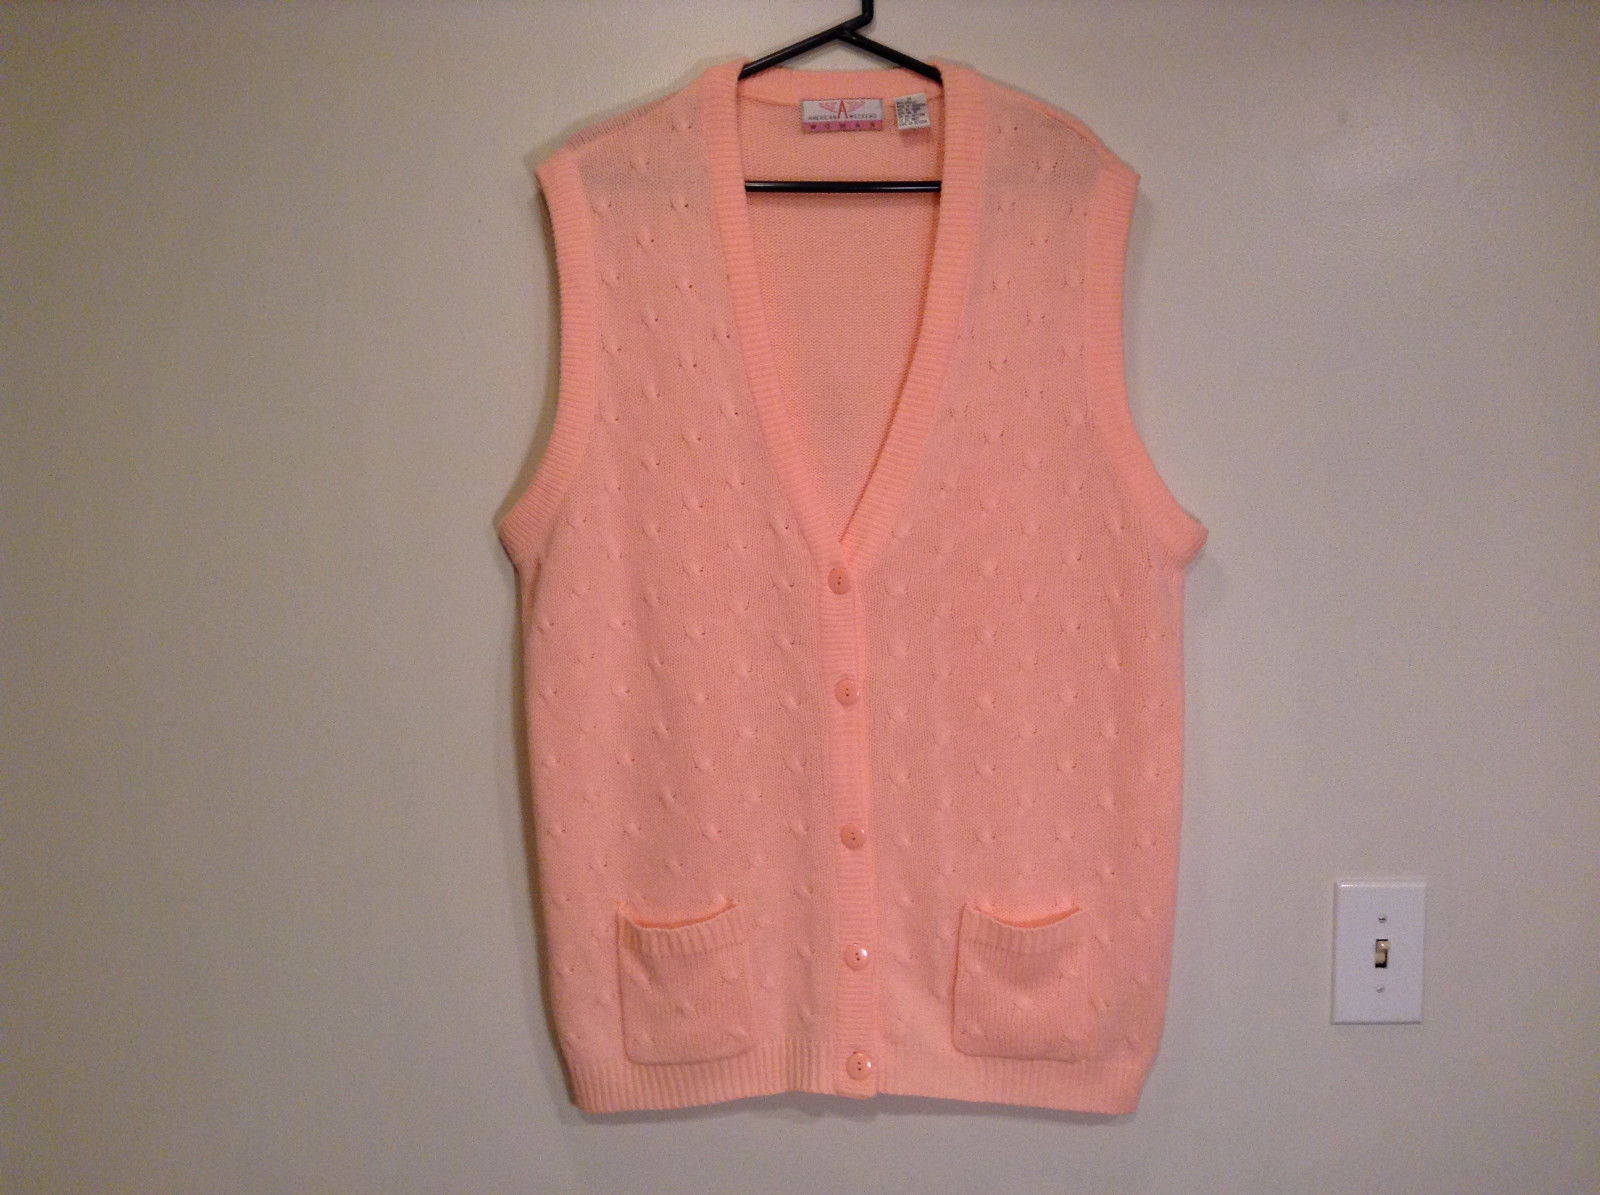 American Weekend Light Coral Pink Vest 2 Small Front  Pockets Size 1X Very Nice